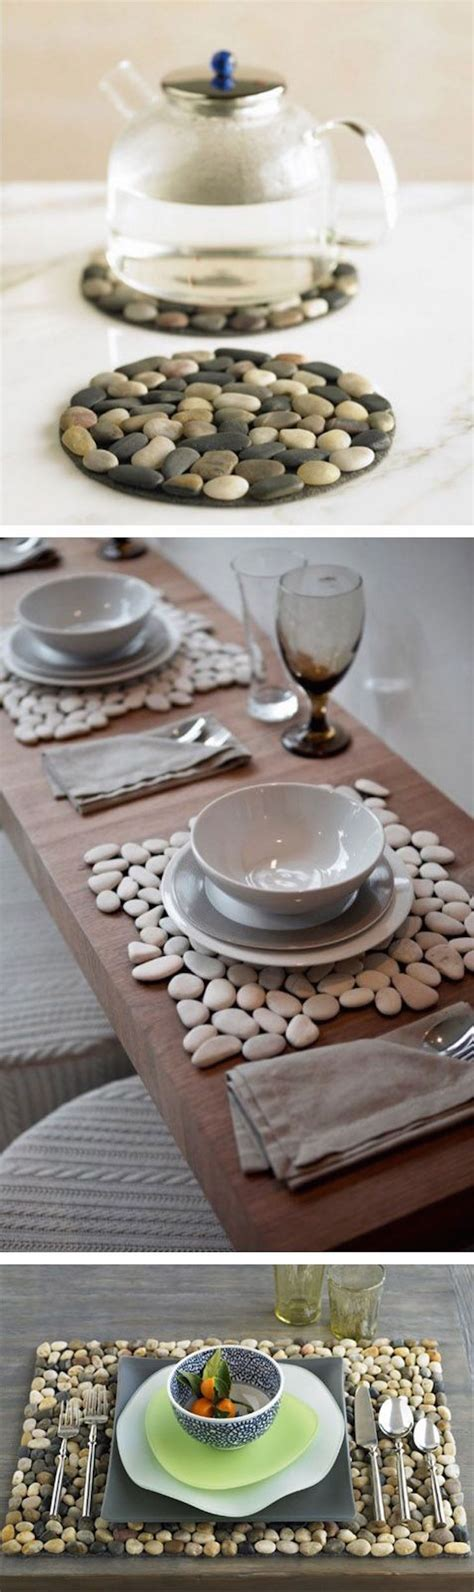 home stones decoration 10 pebbles diy ideas image 9 diy crafts ideas magazine